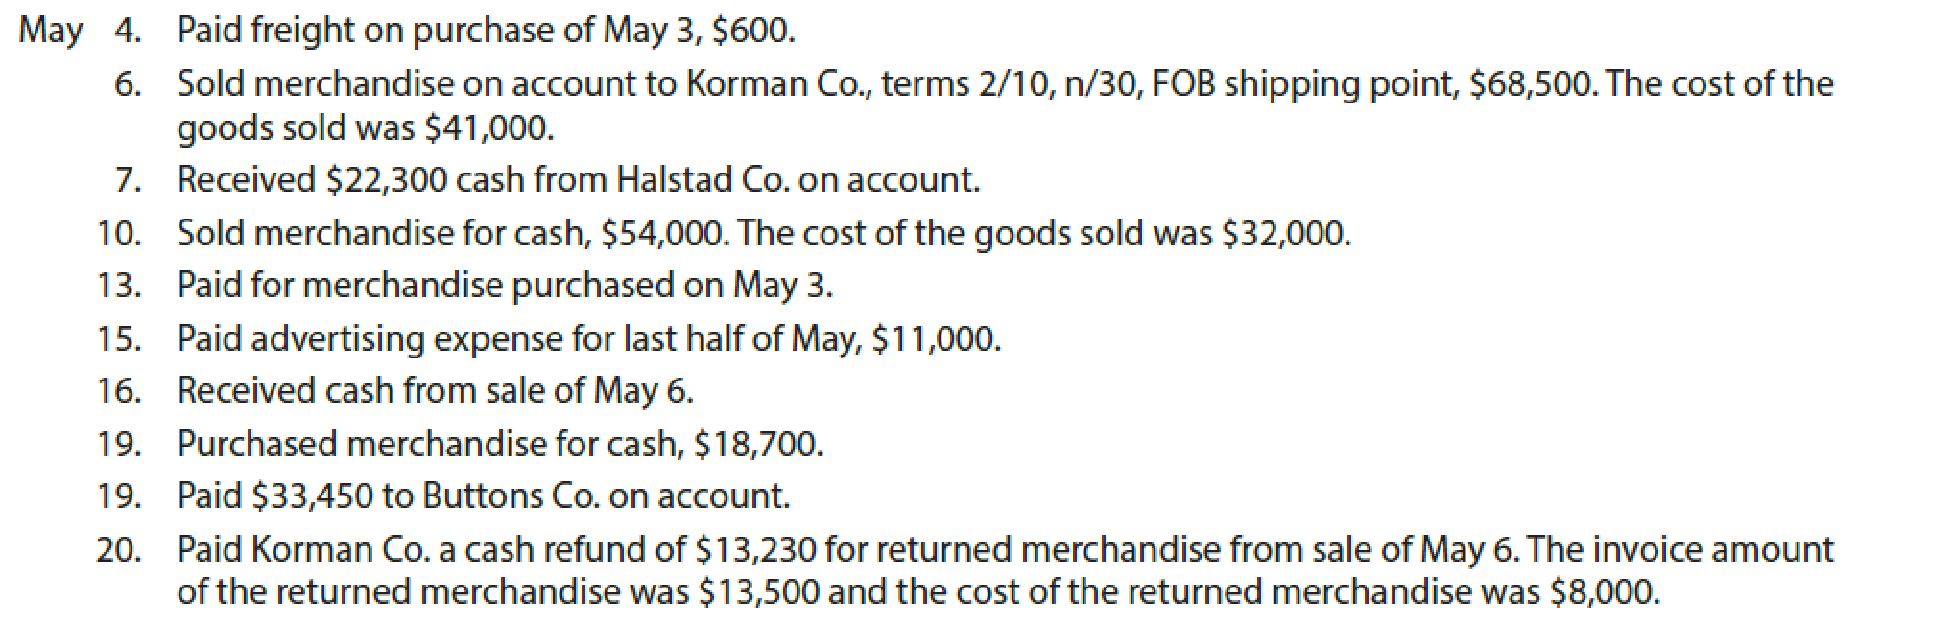 Chapter 5, Problem 1COMP, Palisade Creek Co. is a retail business that uses the perpetual inventory system. The account , example  3